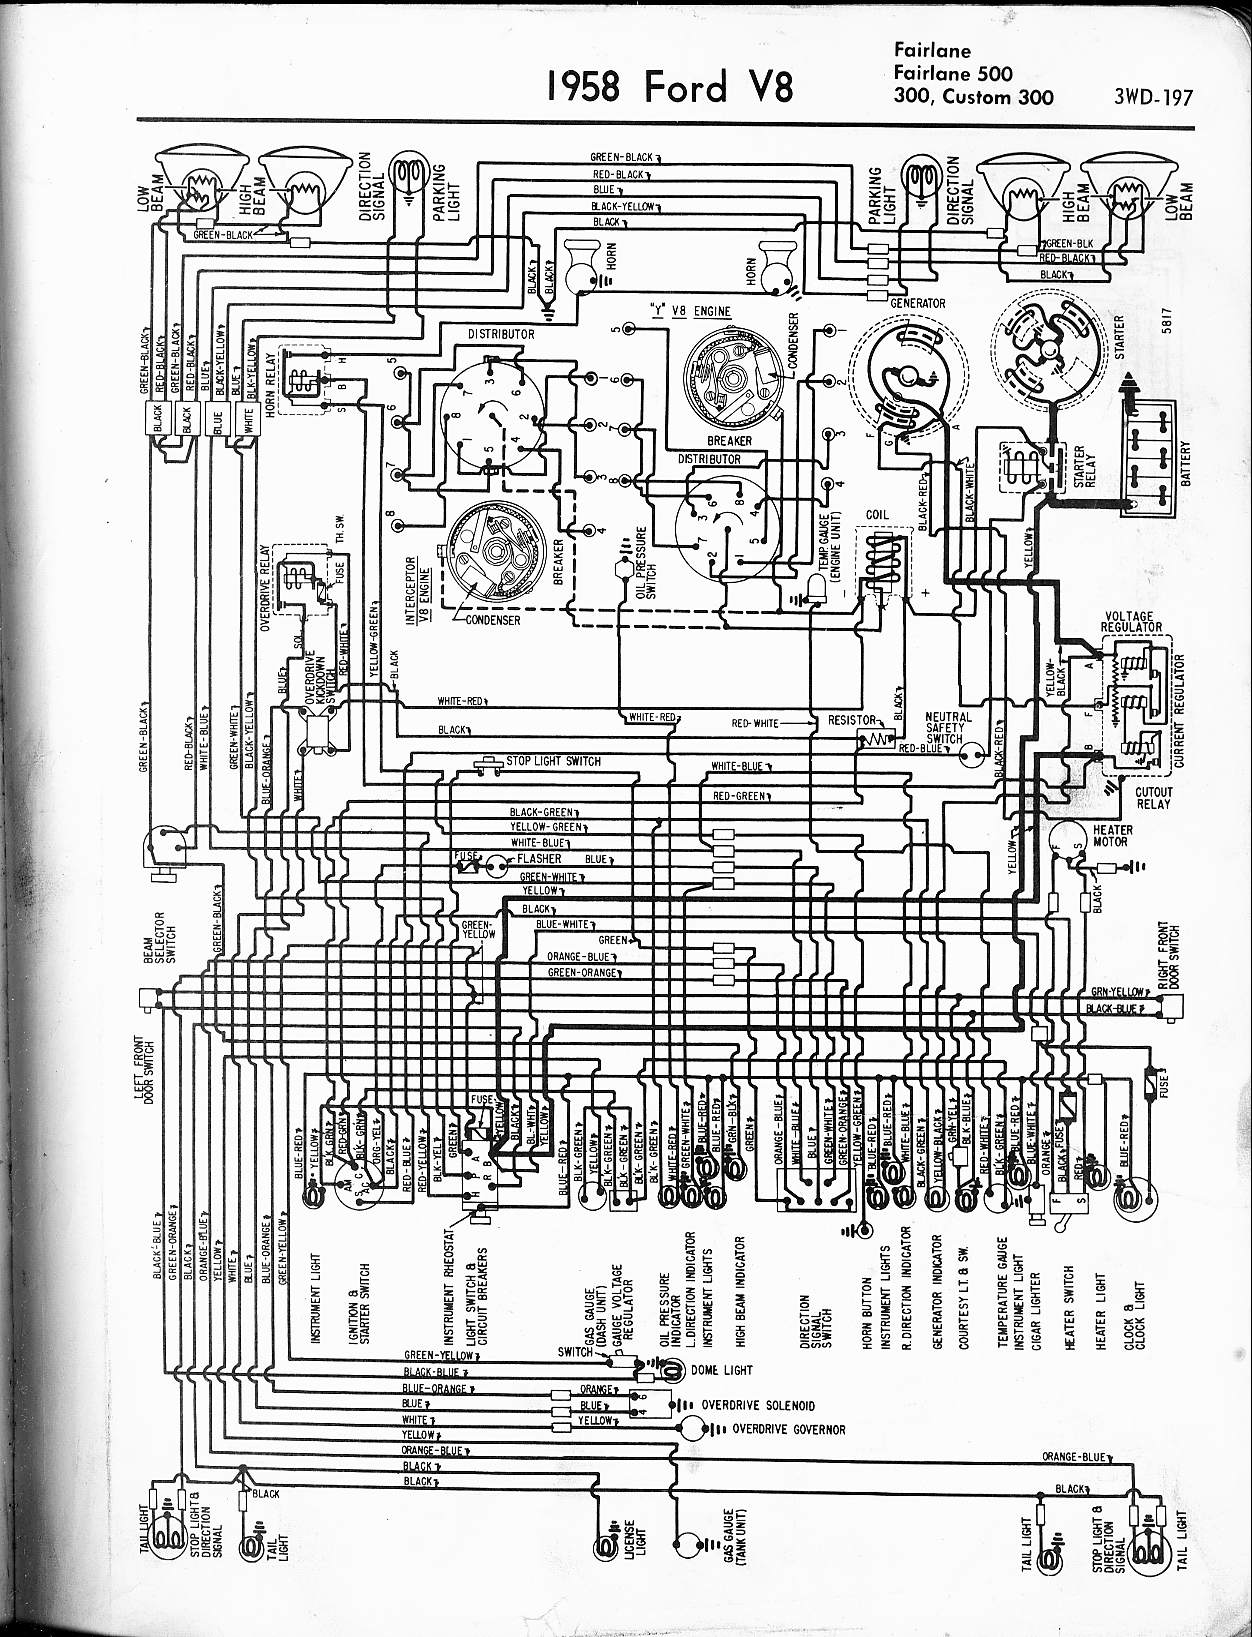 1957 Ford Wiring Diagram Third Level Subaru Baja Thunderbird Underhood Box